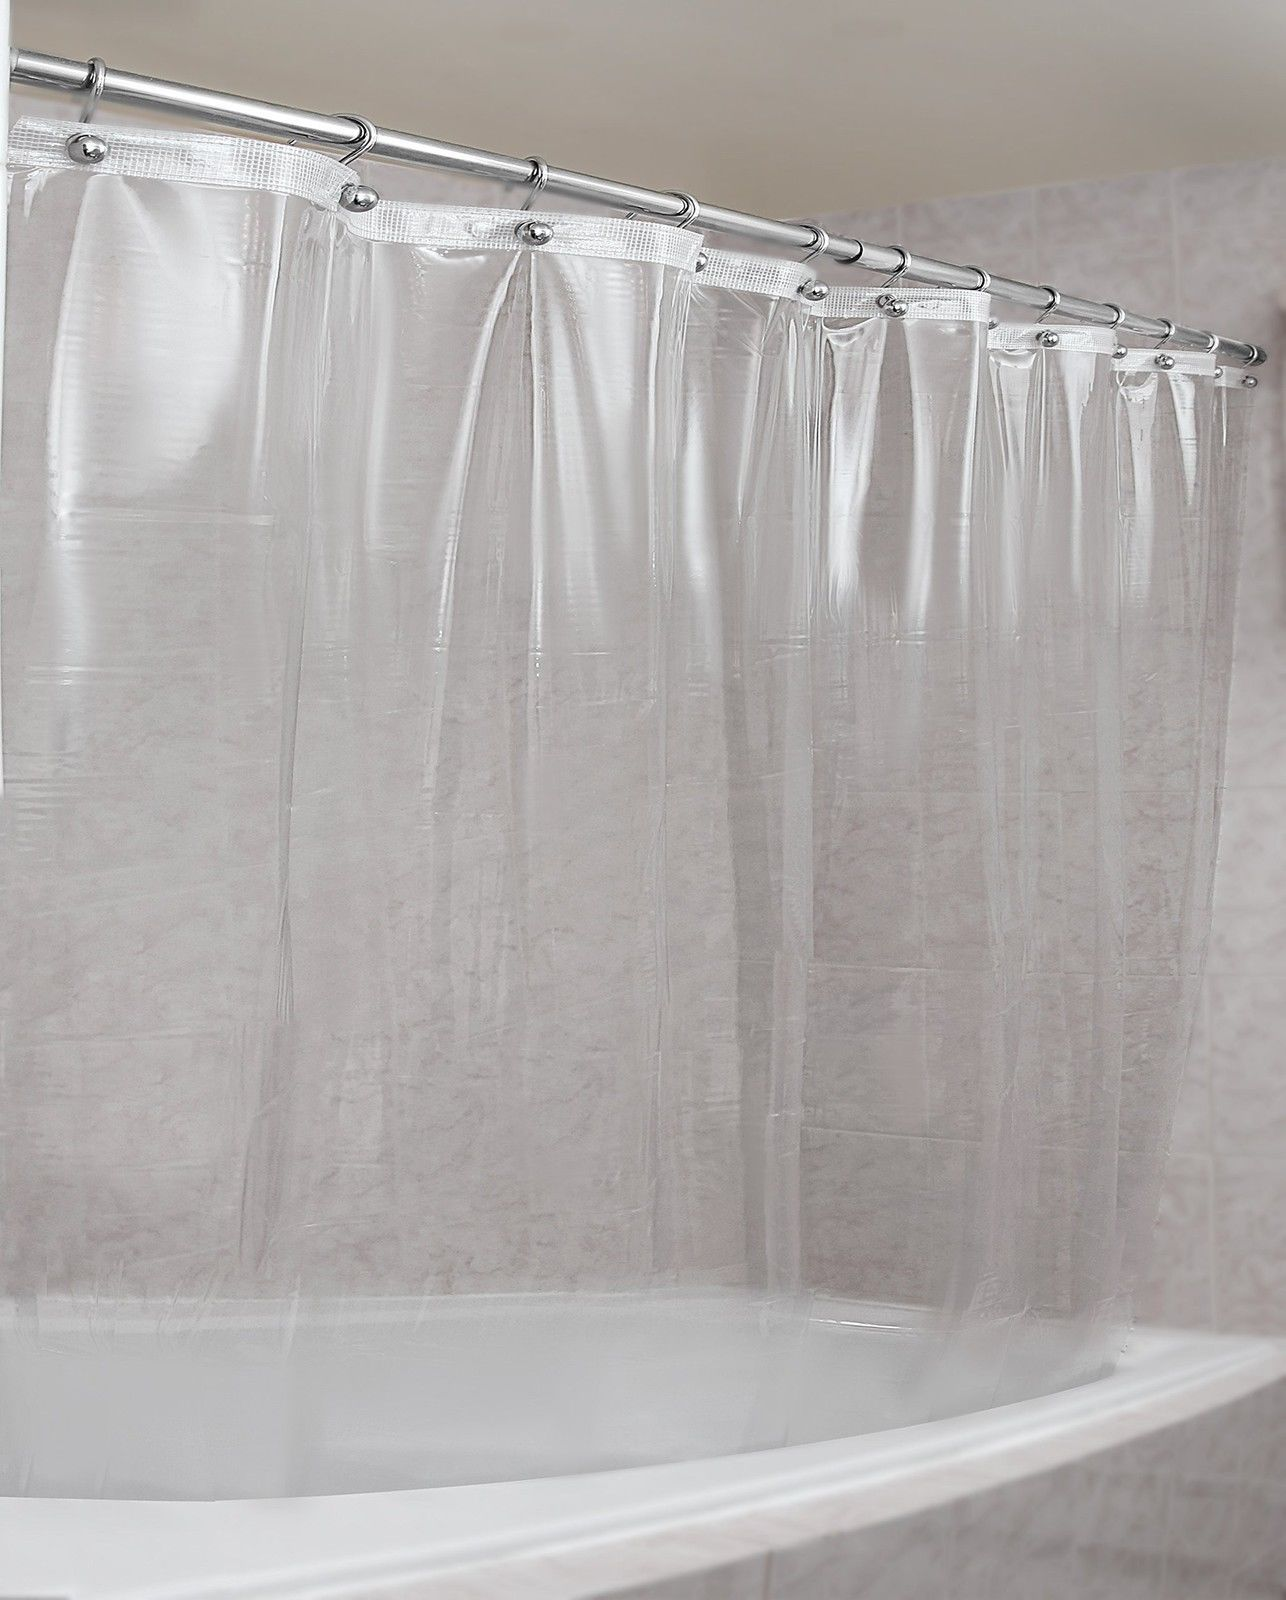 100/% Peva Solid Bath Tub Shower Curtain Liner Mildew Resistant 72in x 70in